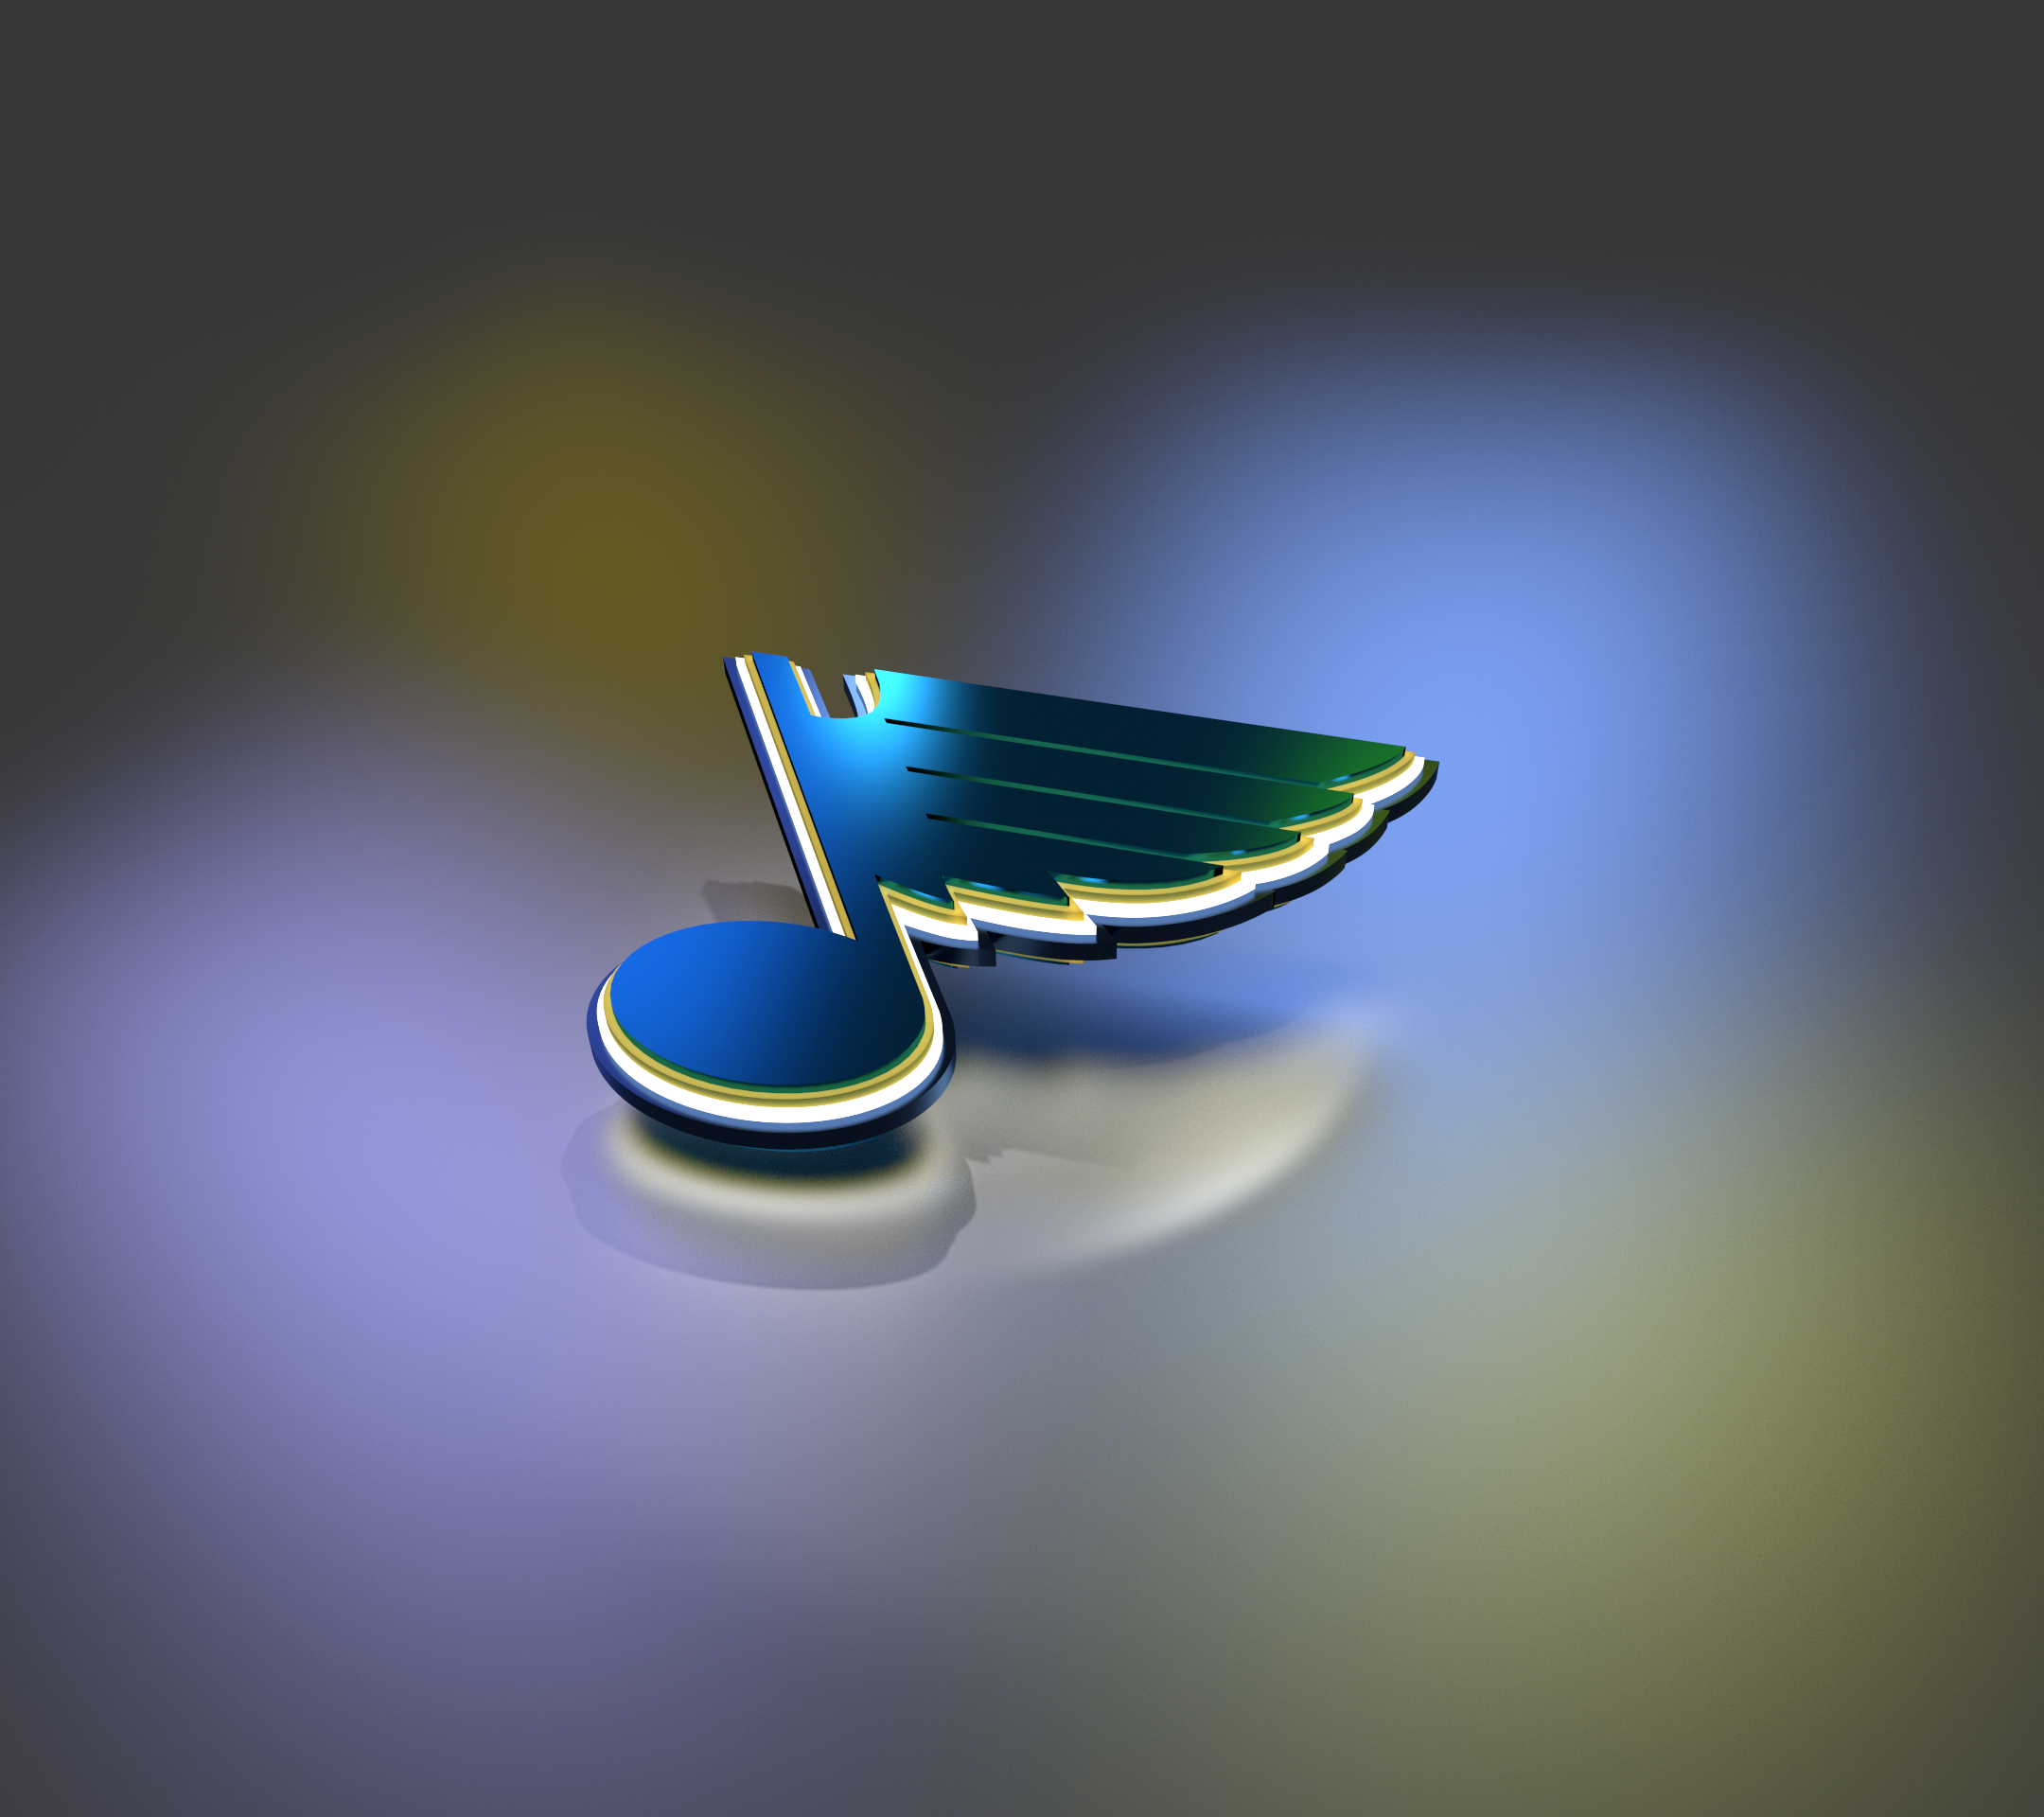 Free Download St Louis Blues Wallpapers Zndhj43